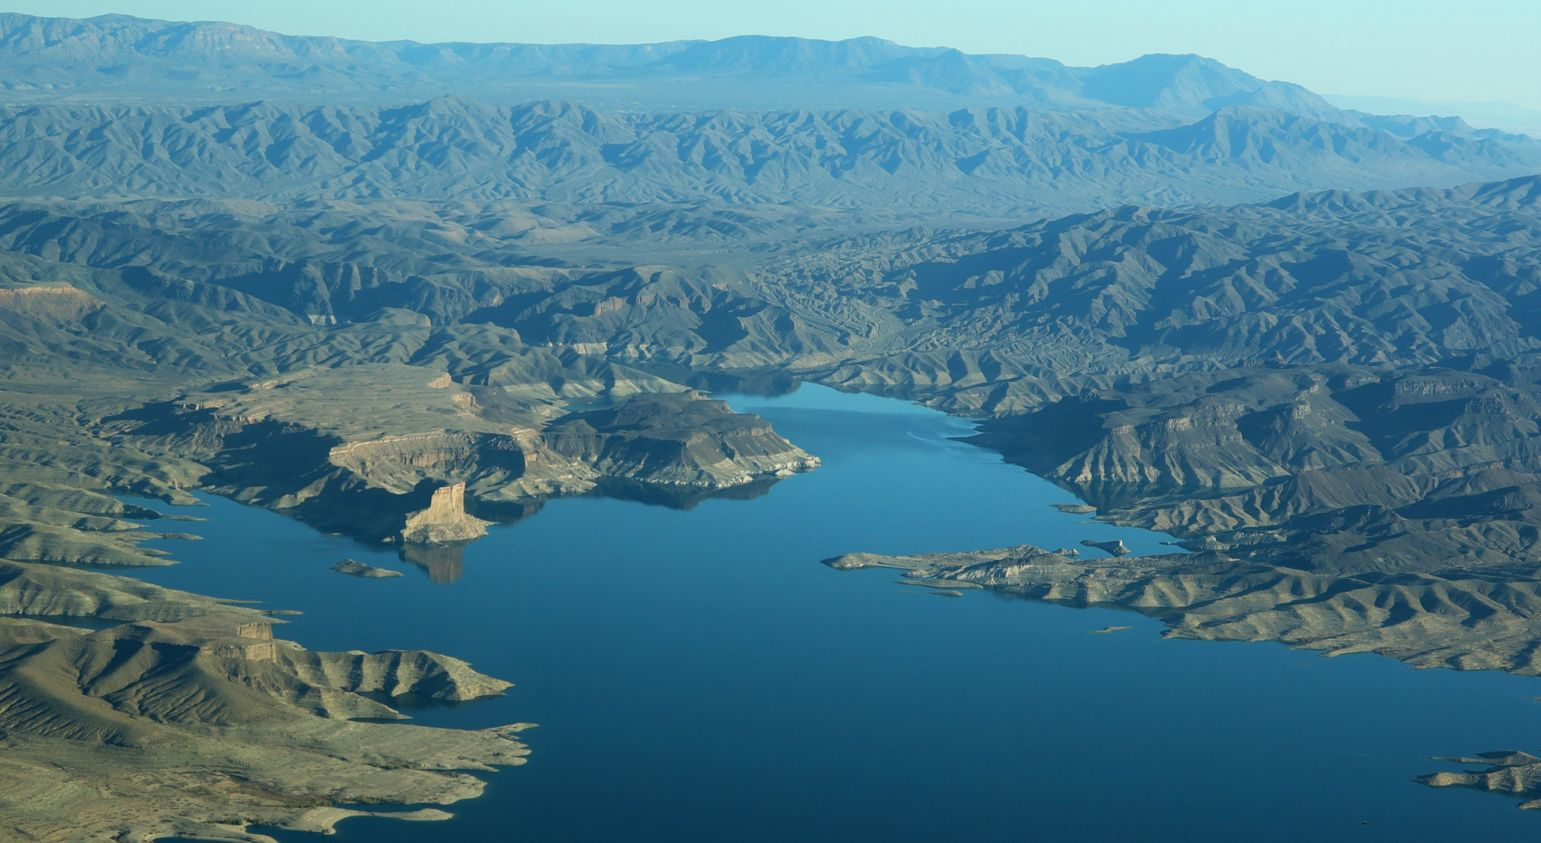 A bird's-eye view of Lake Mead and the surrounding scenery from a helicopter tour from Las Vegas.